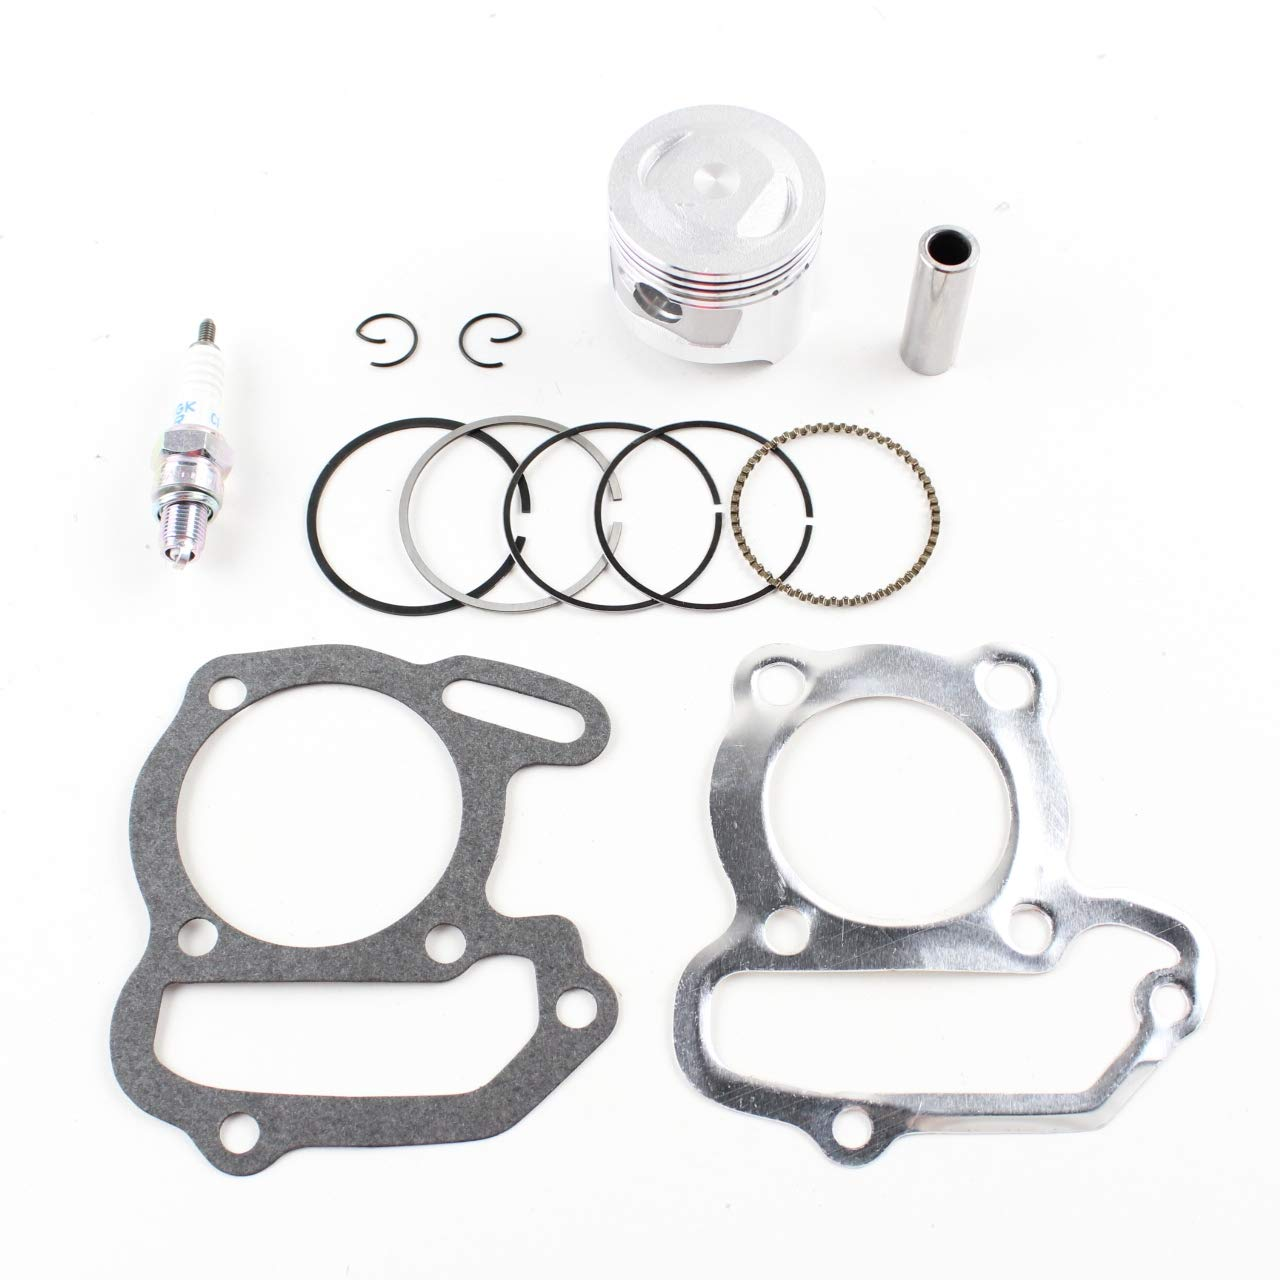 Standard Piston Gasket Ring & SPark Plug Kit 1985-2008 Yamaha Grizzly Badger Raptor 80 Moto 4 YFM80